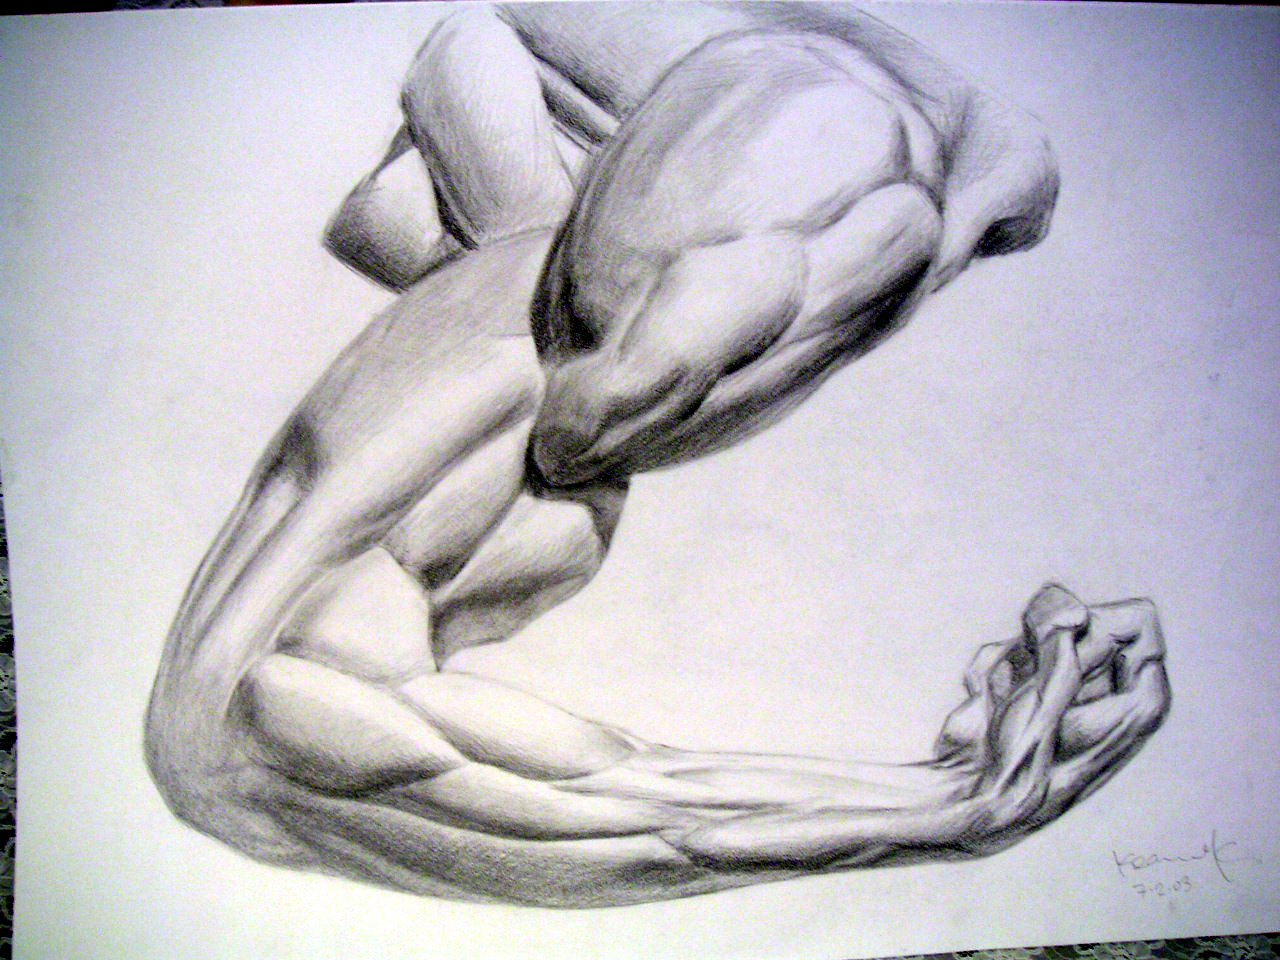 Arm Muscle Drawing At Getdrawings Free For Personal Use Arm